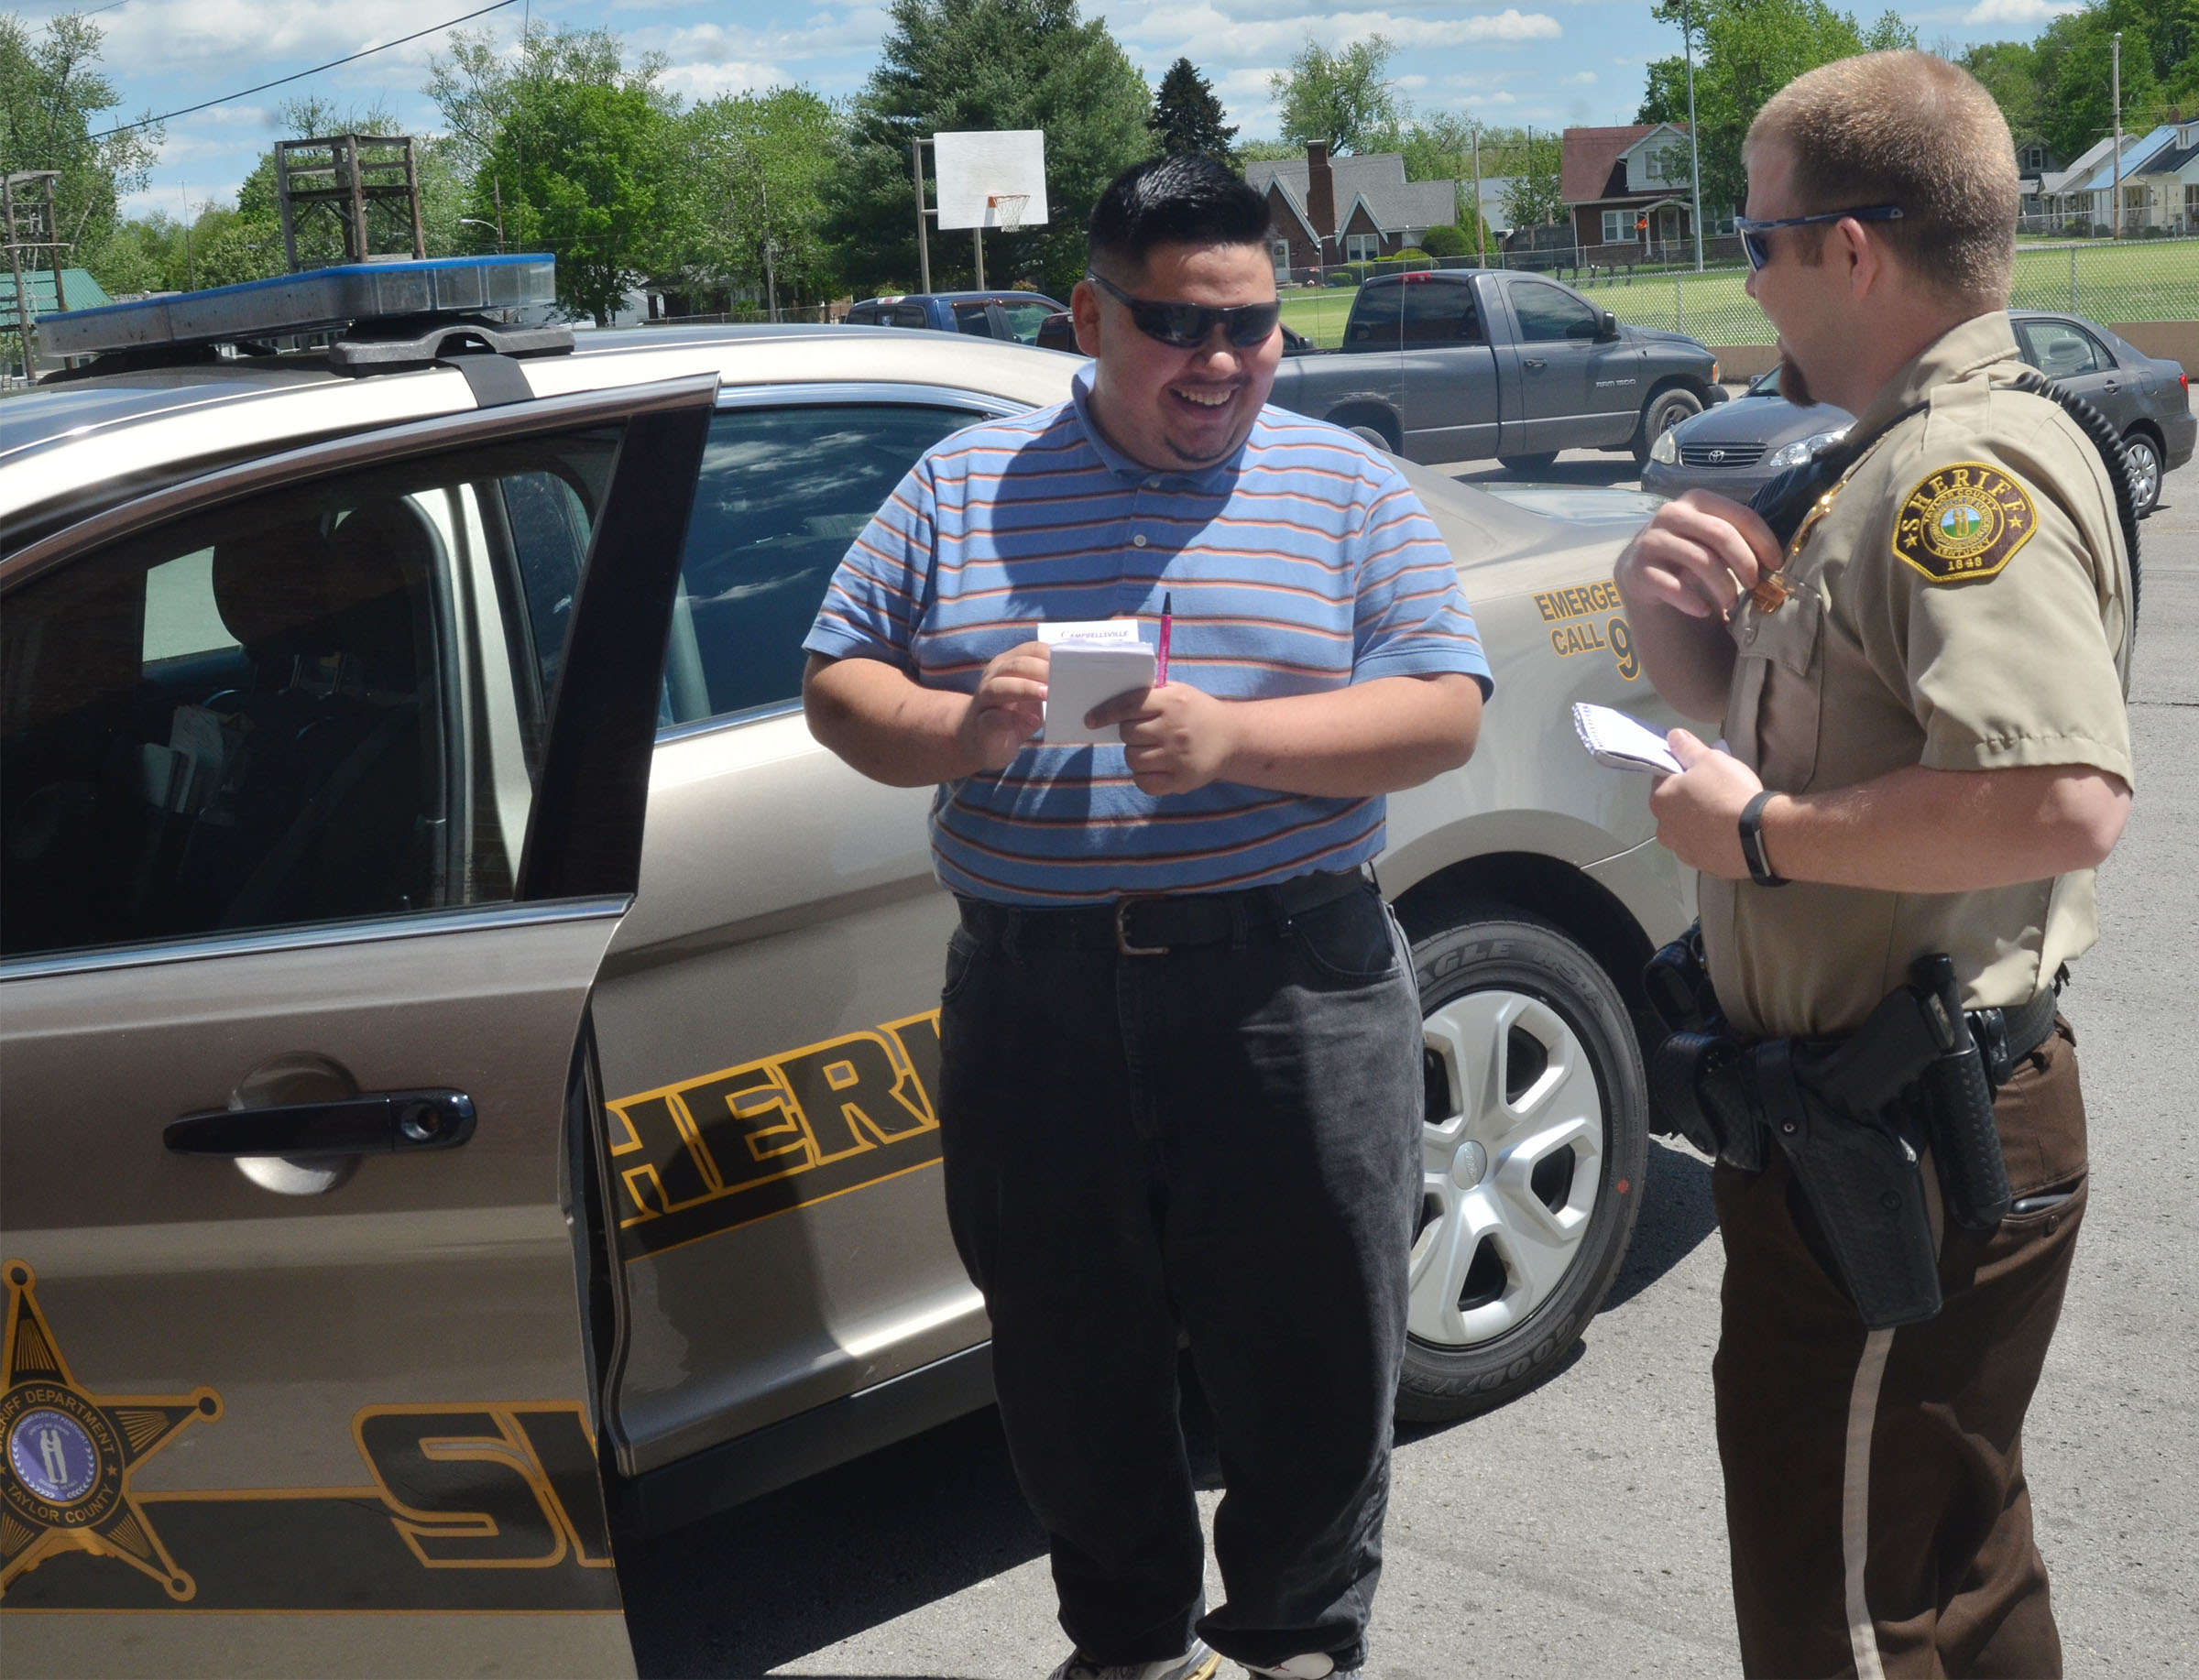 CHS senior Robert Tungate and Taylor County Sheriff's Deputy Tyler Finn compare notebooks that they keep in their pockets.